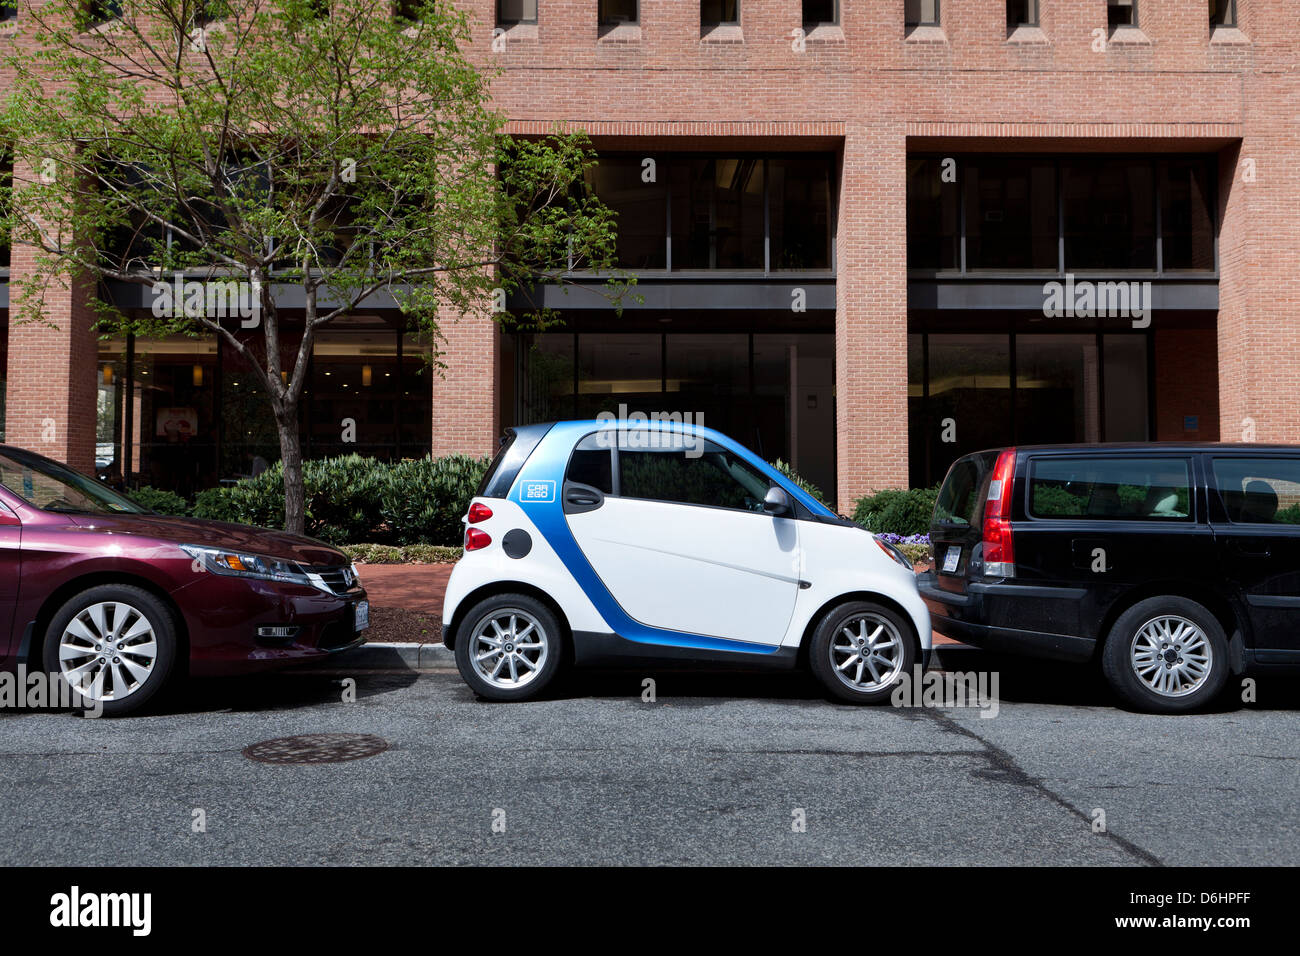 SmartCar parked in between two cars - Stock Image